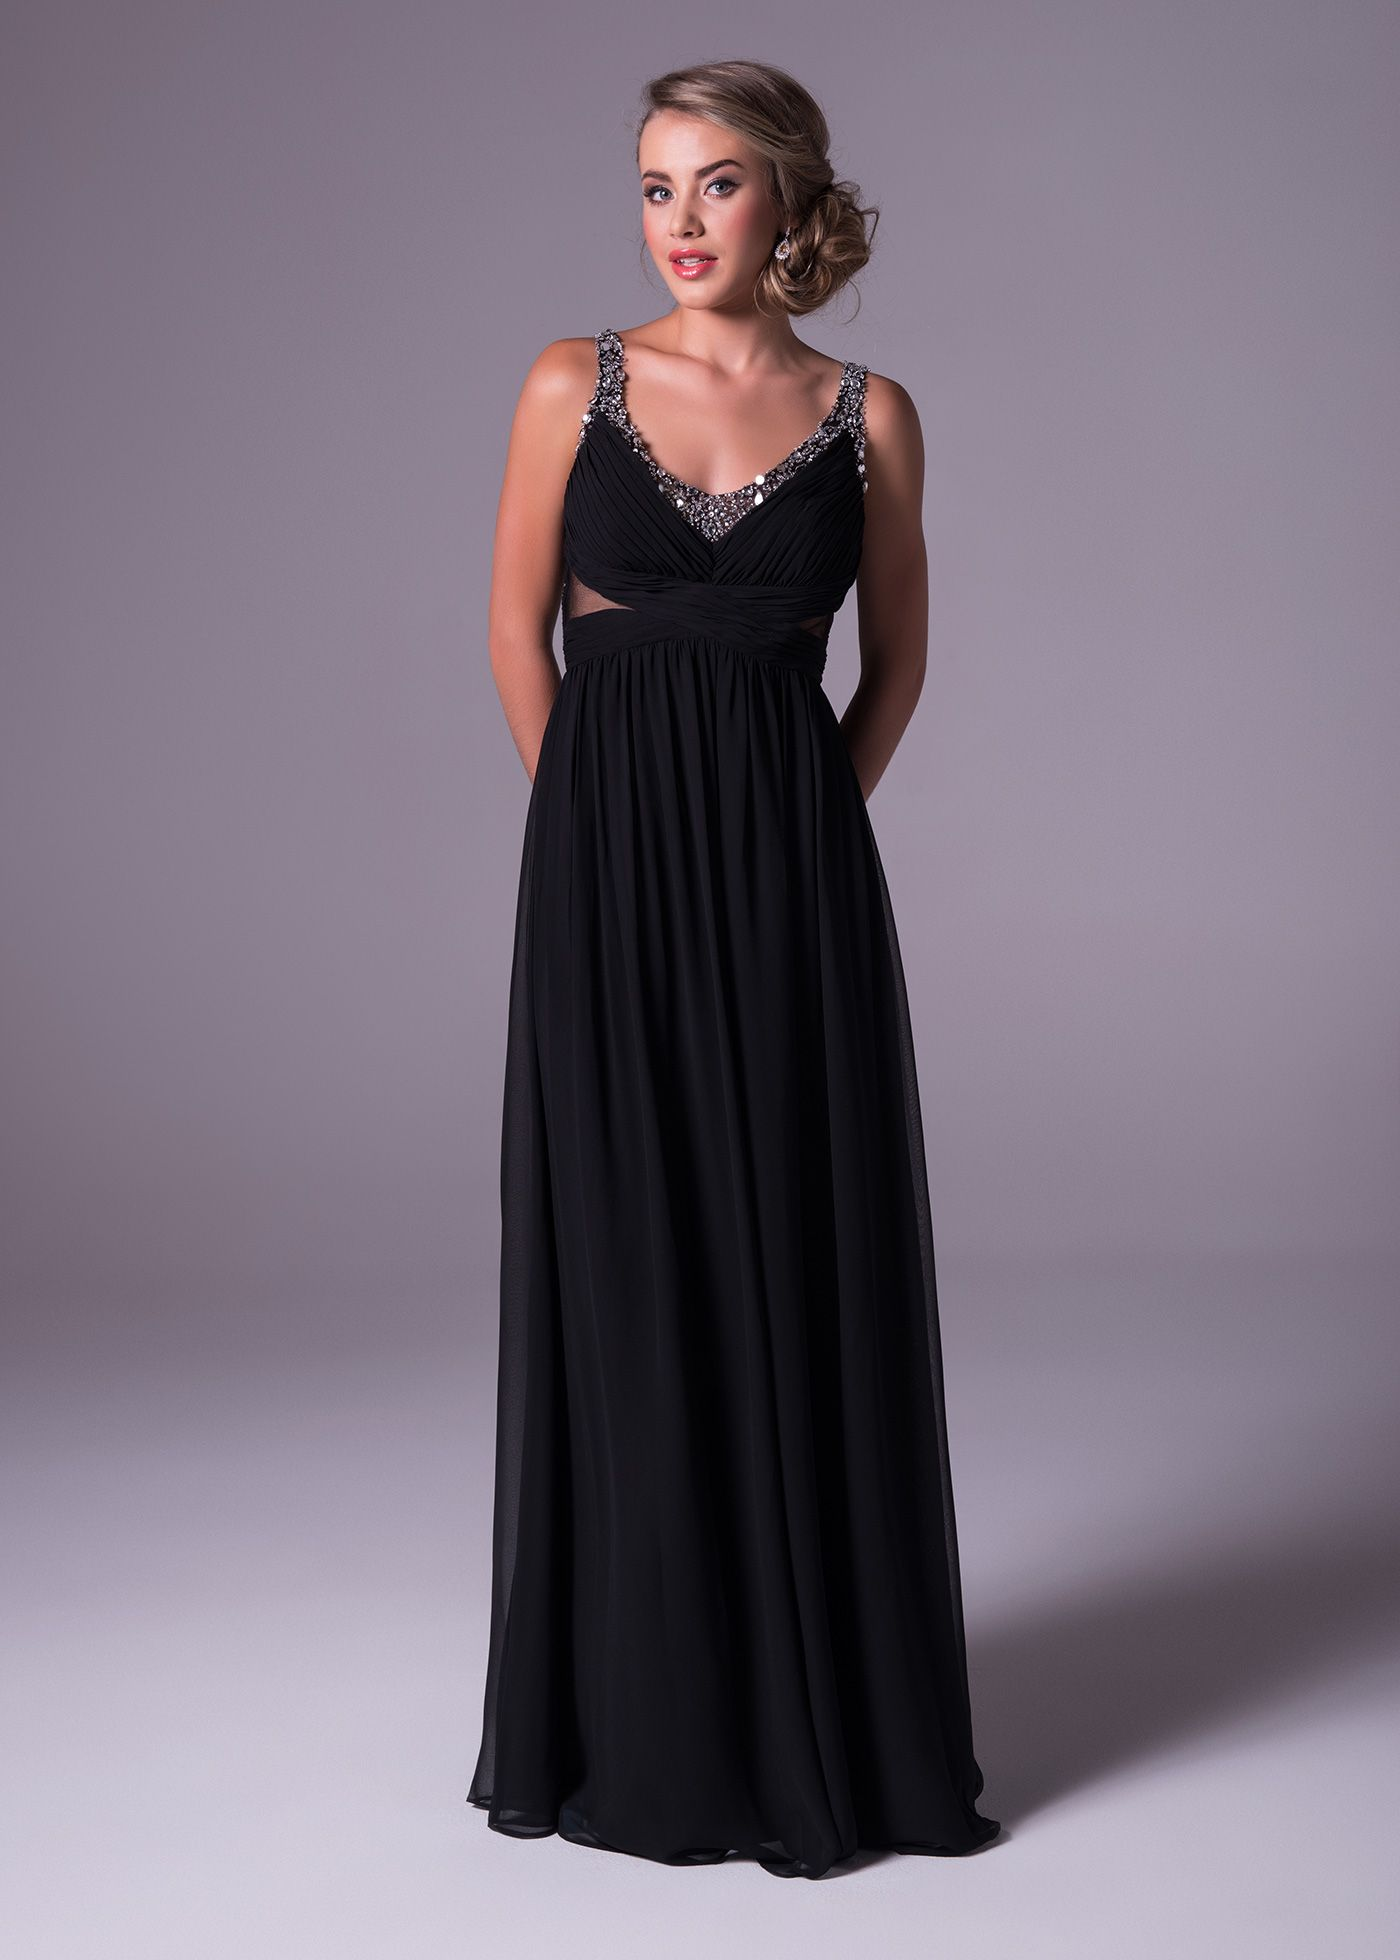 Navy blue dress for spring wedding  This black chiffon gown is soft and slim and show off with itus